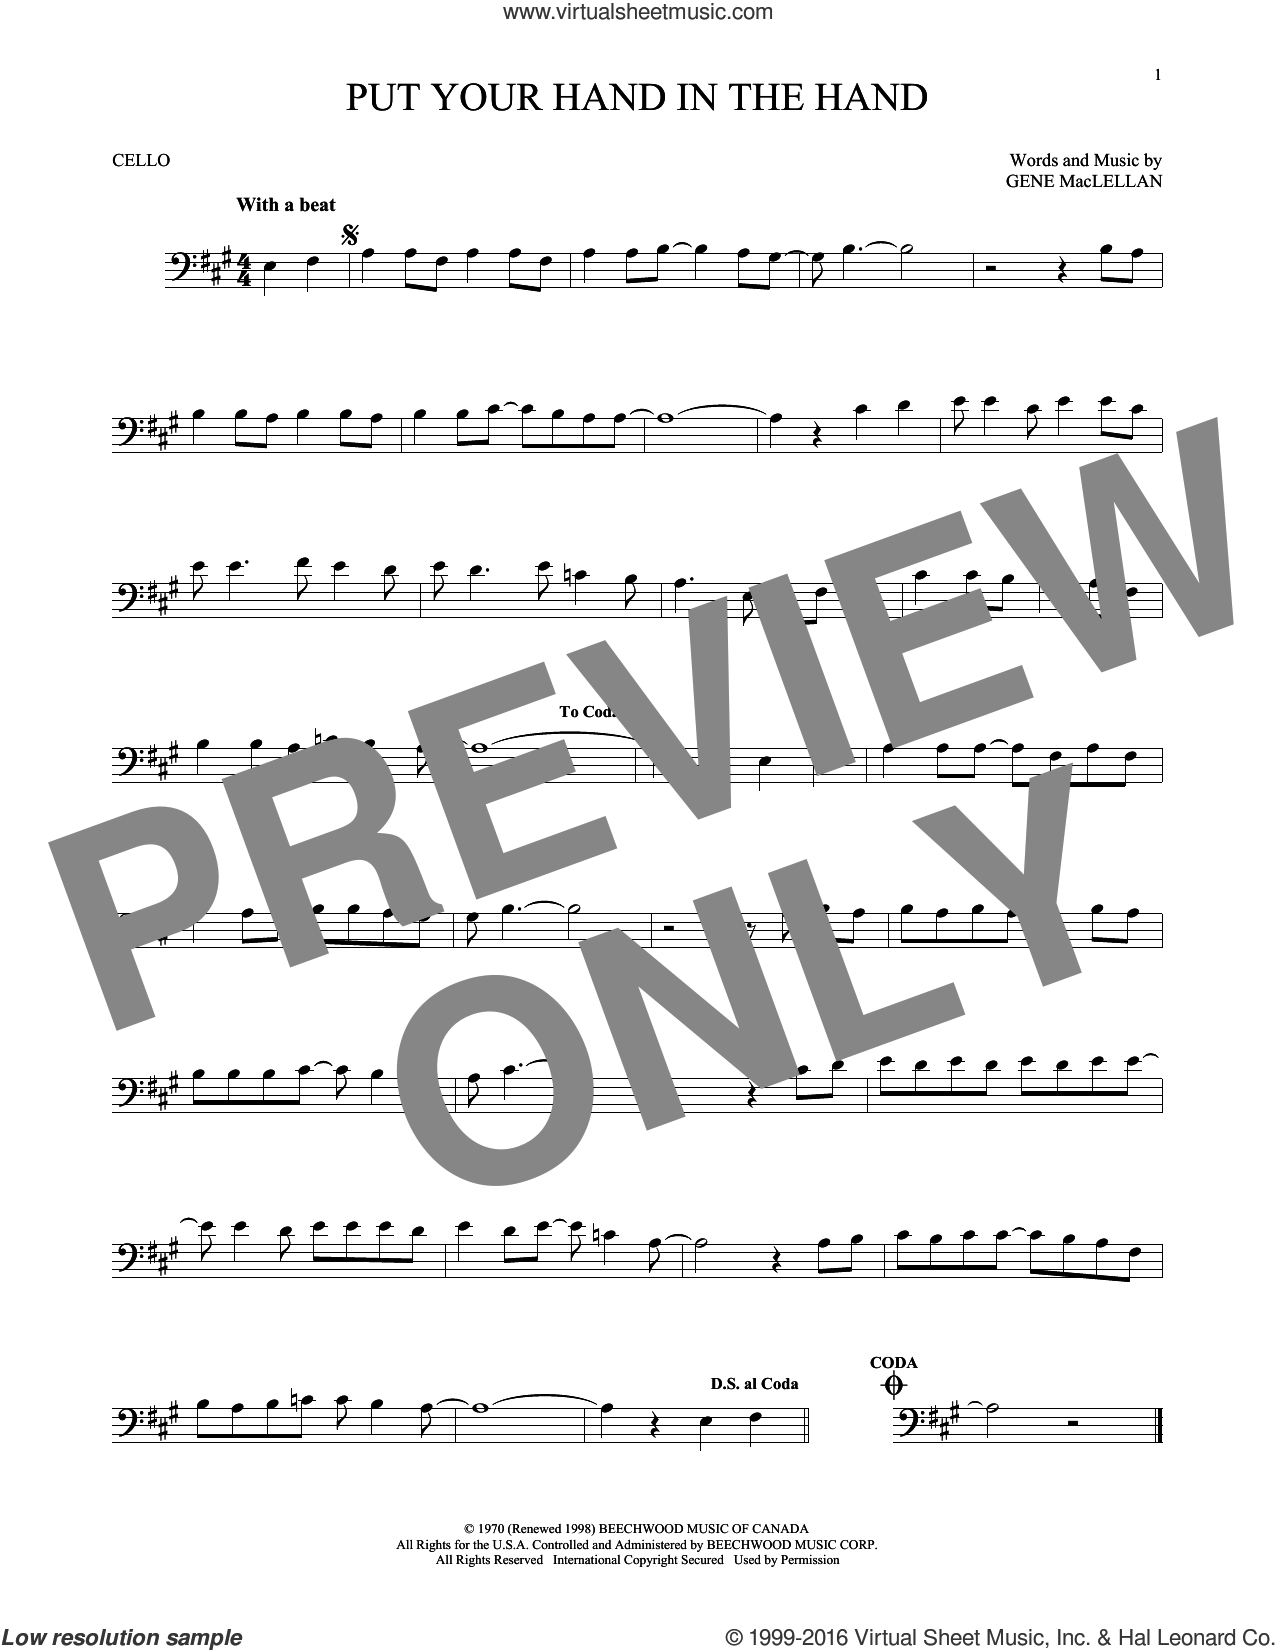 Put Your Hand In The Hand sheet music for cello solo by Ocean. Score Image Preview.